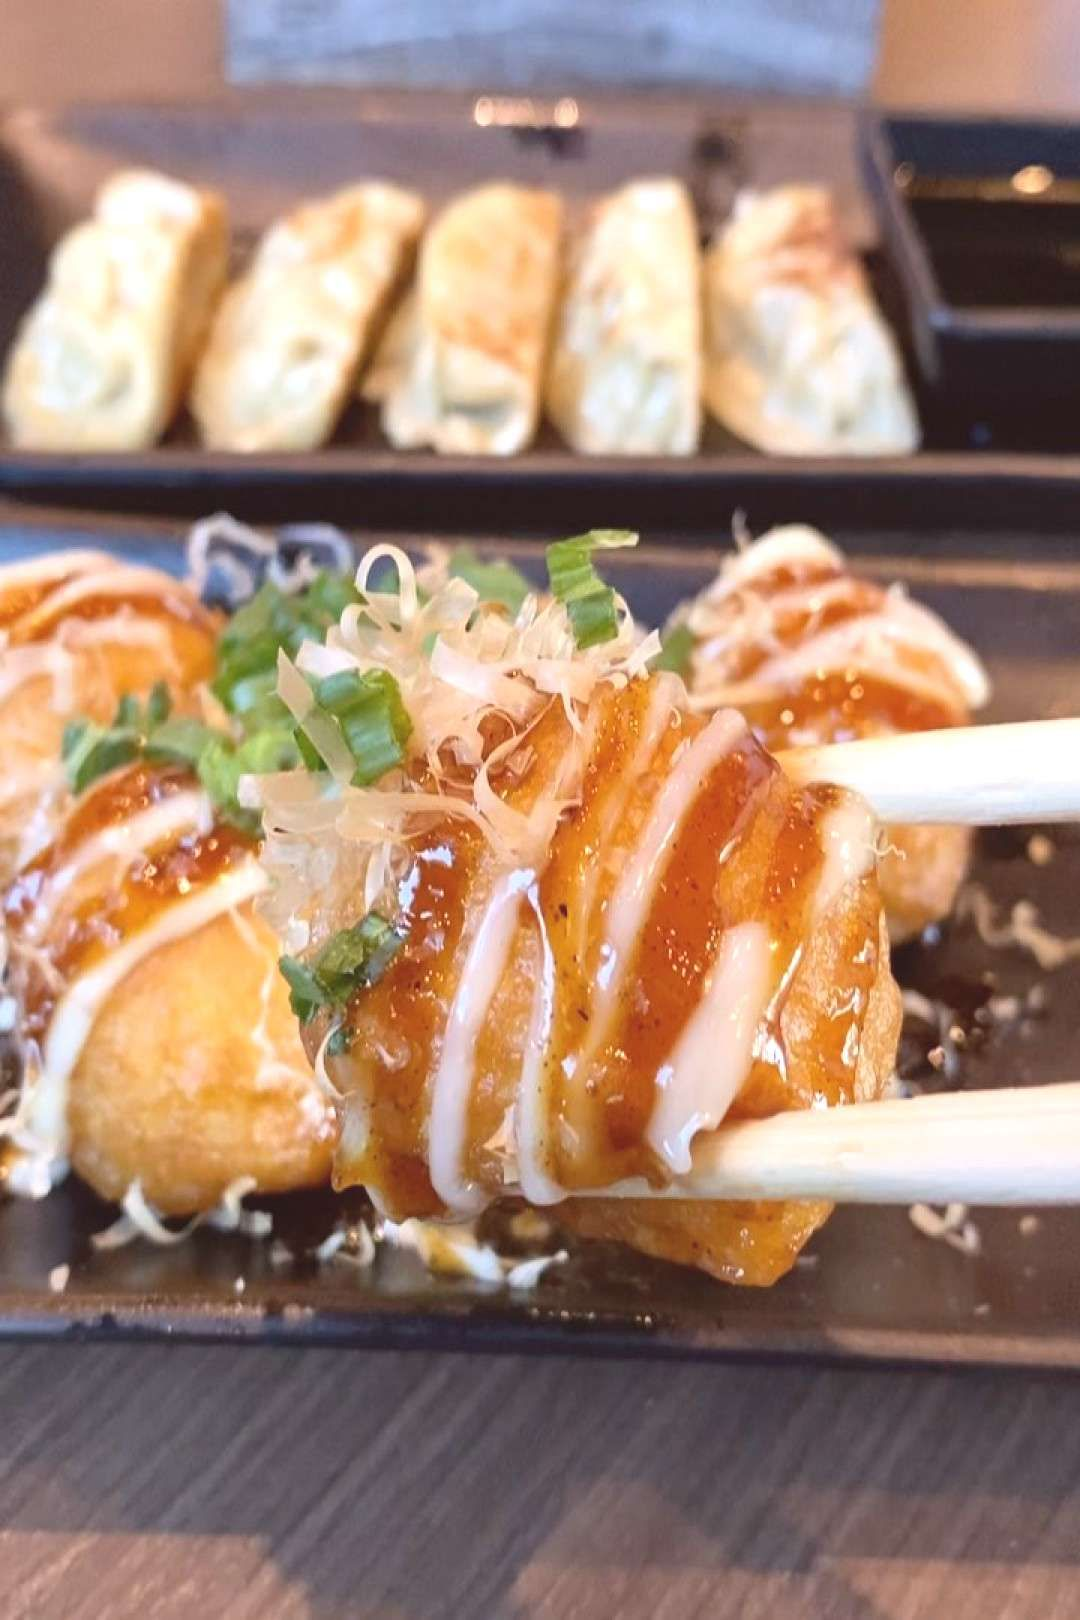 #ramennoodles #takoyaki #devour #better #orders #kobas #many #grab #how #can #you #two Takoyaki - how many can you devour? Better grab two orders #kobasYou can find Ramen noodles and more on our website.Takoyaki - how many ca...